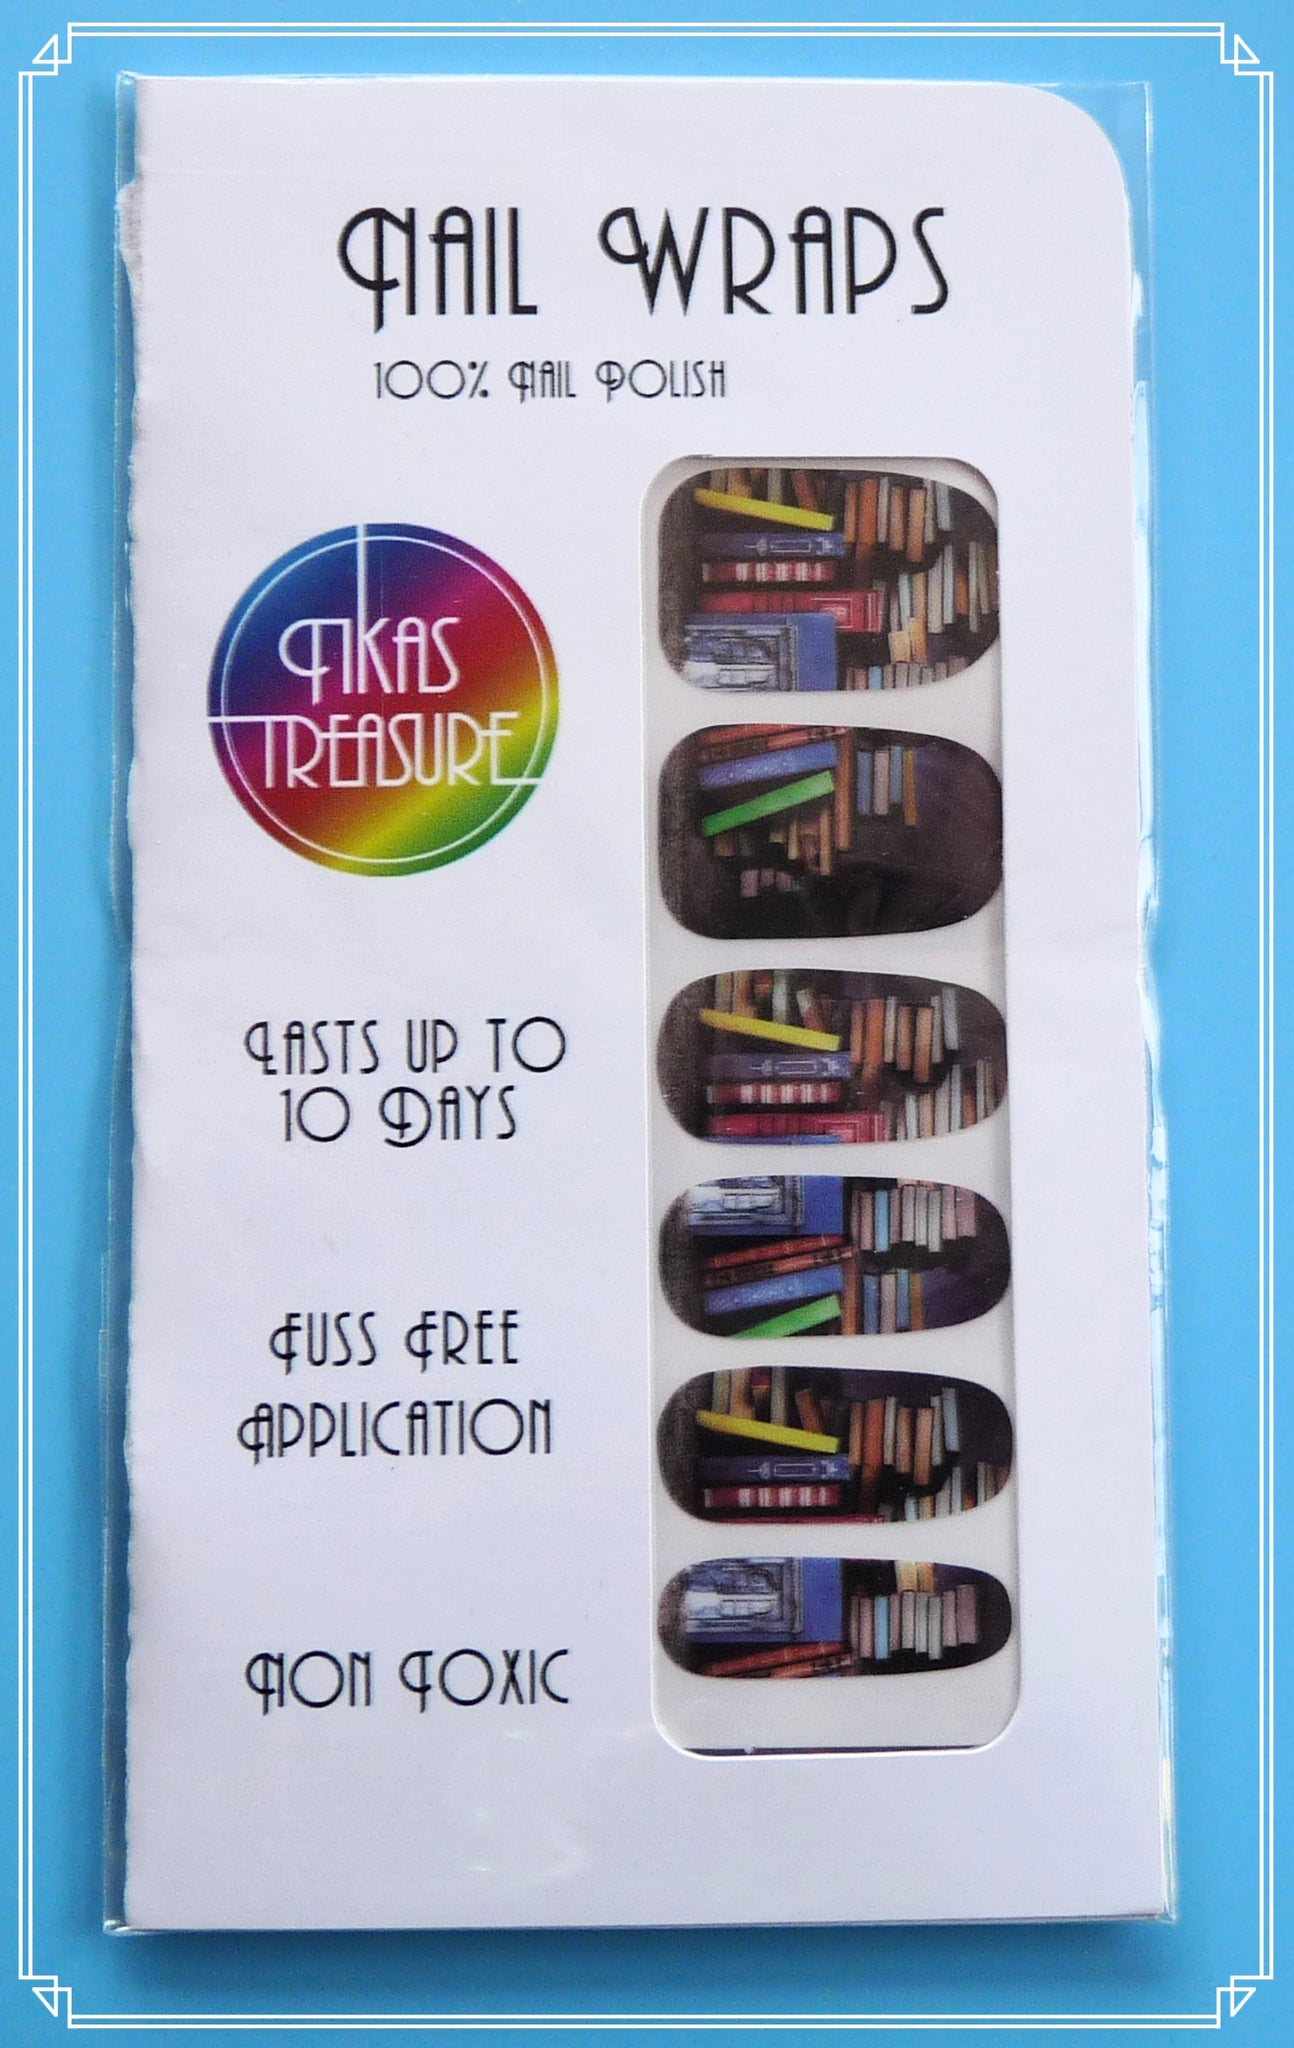 Bookish - Nail wraps